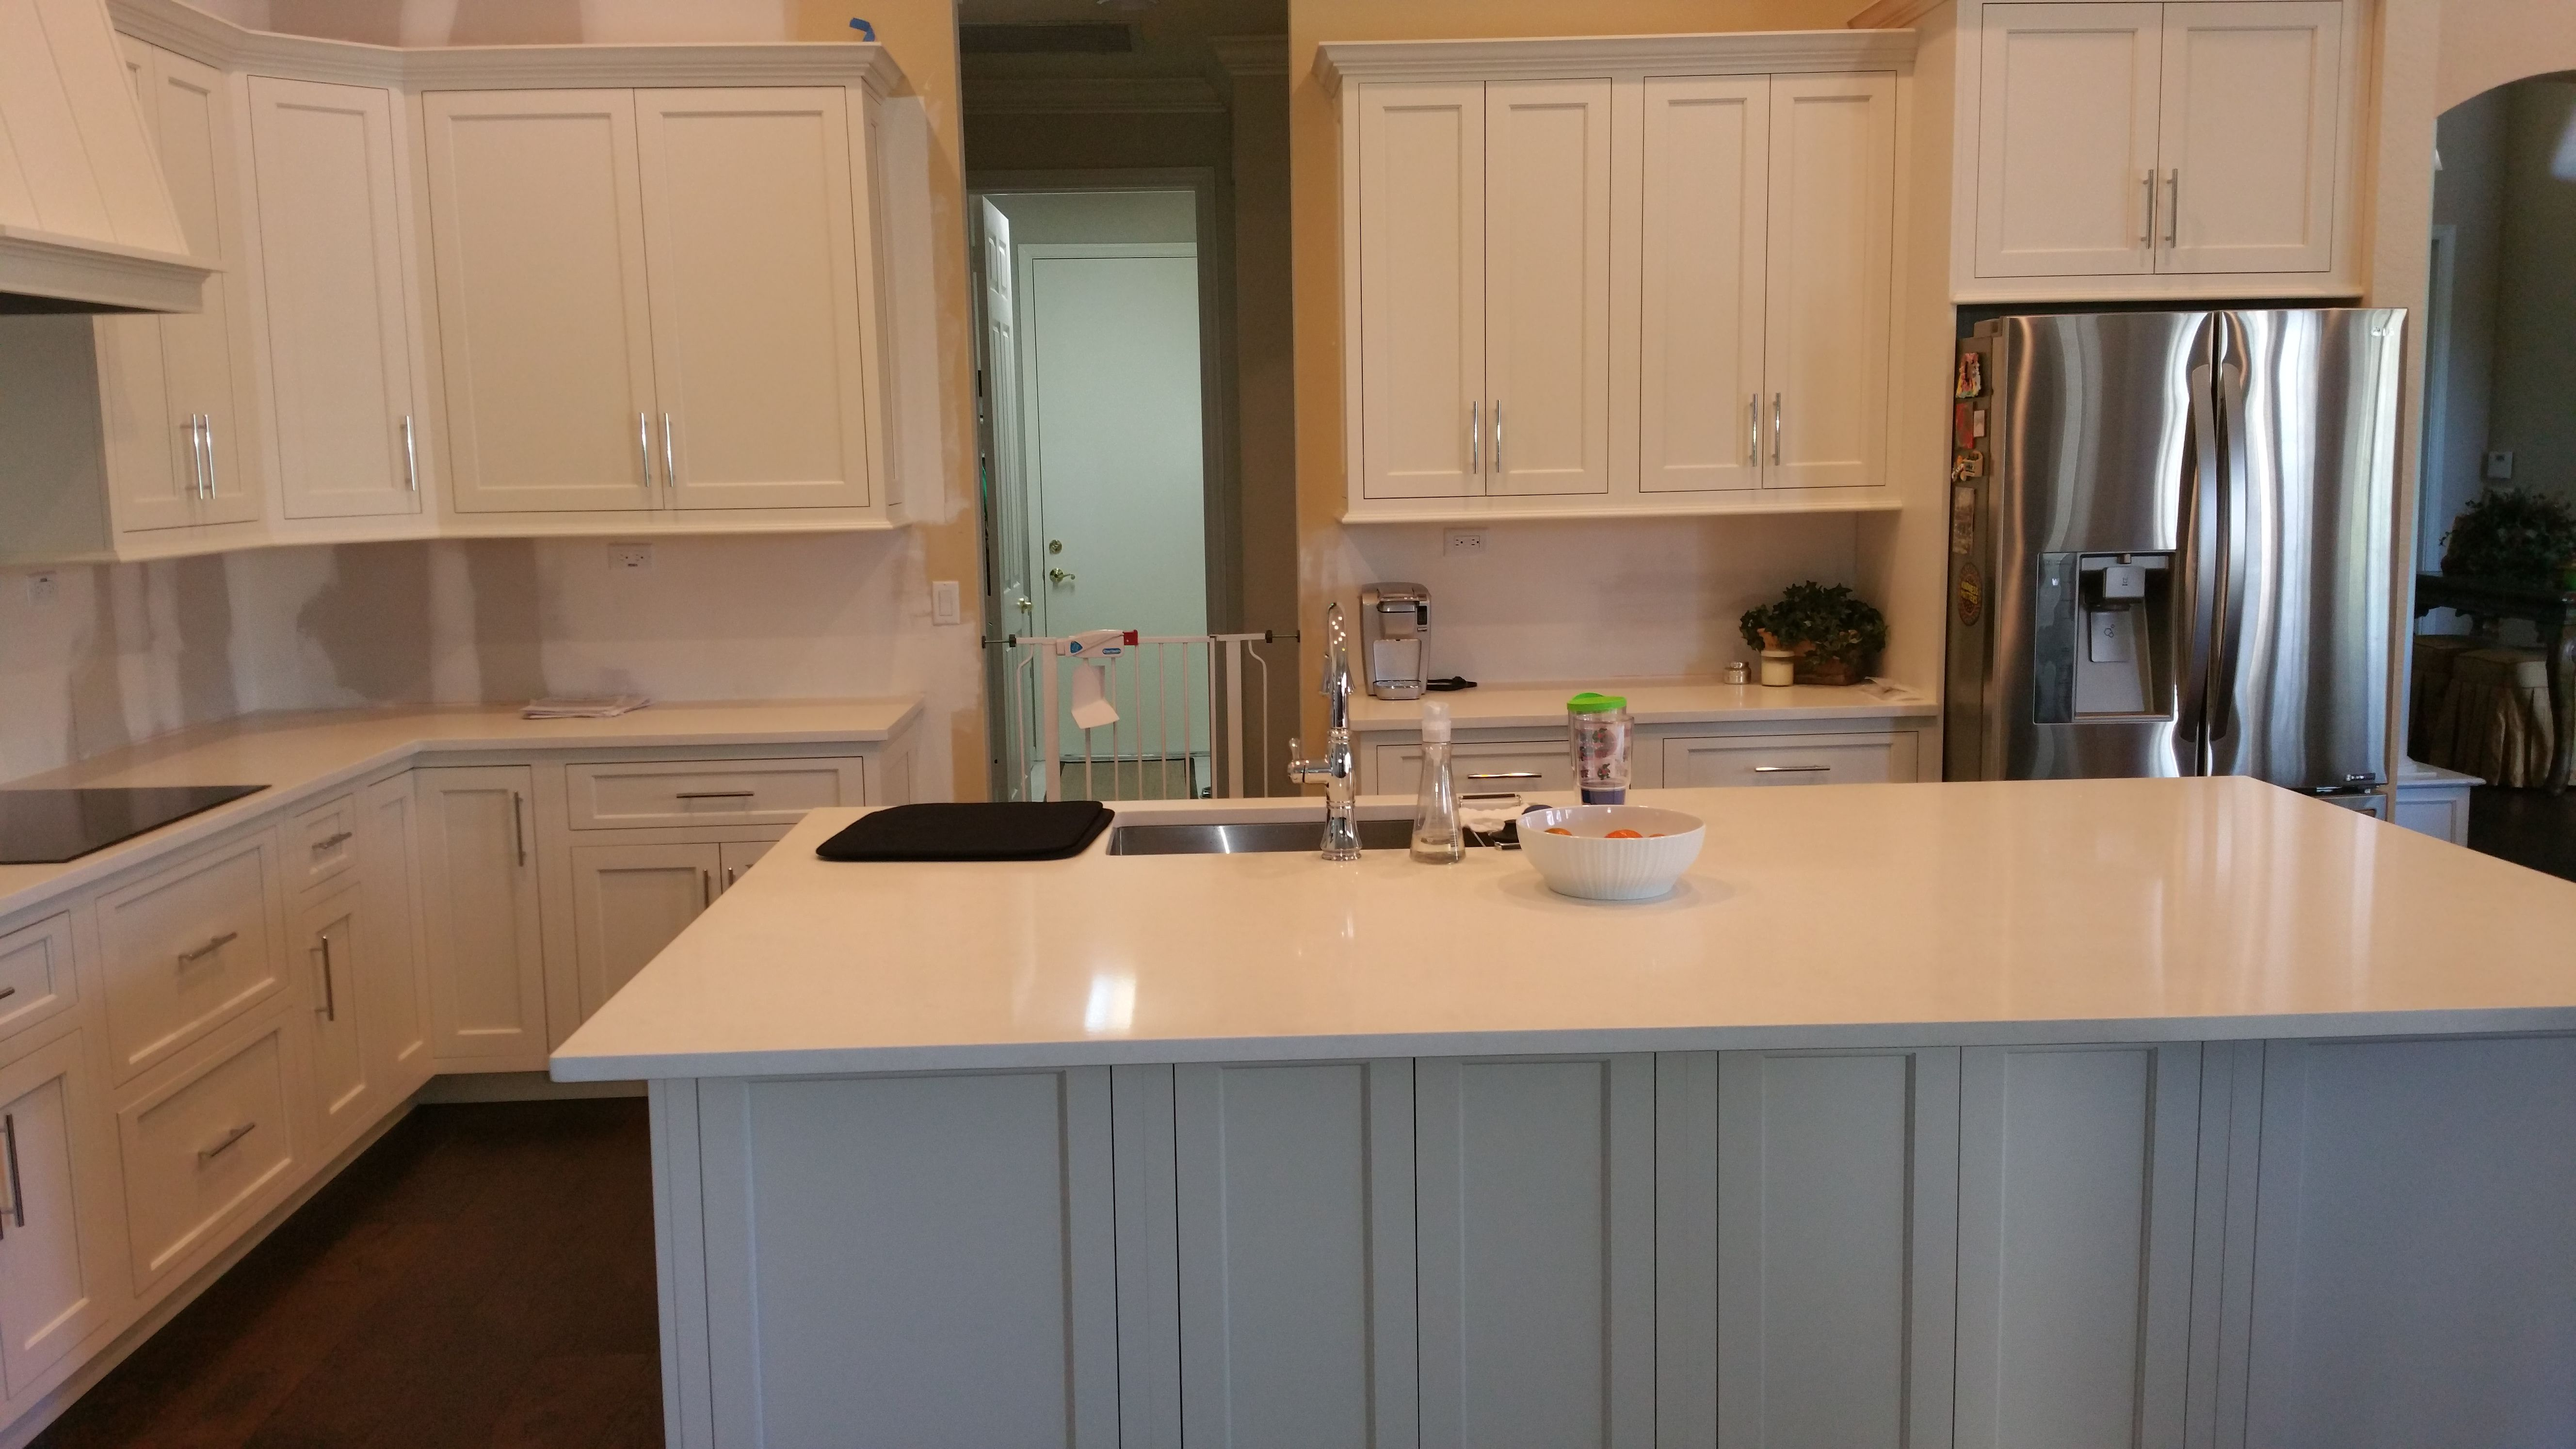 Pin On Dream Kitchens By Rdi Kitchens